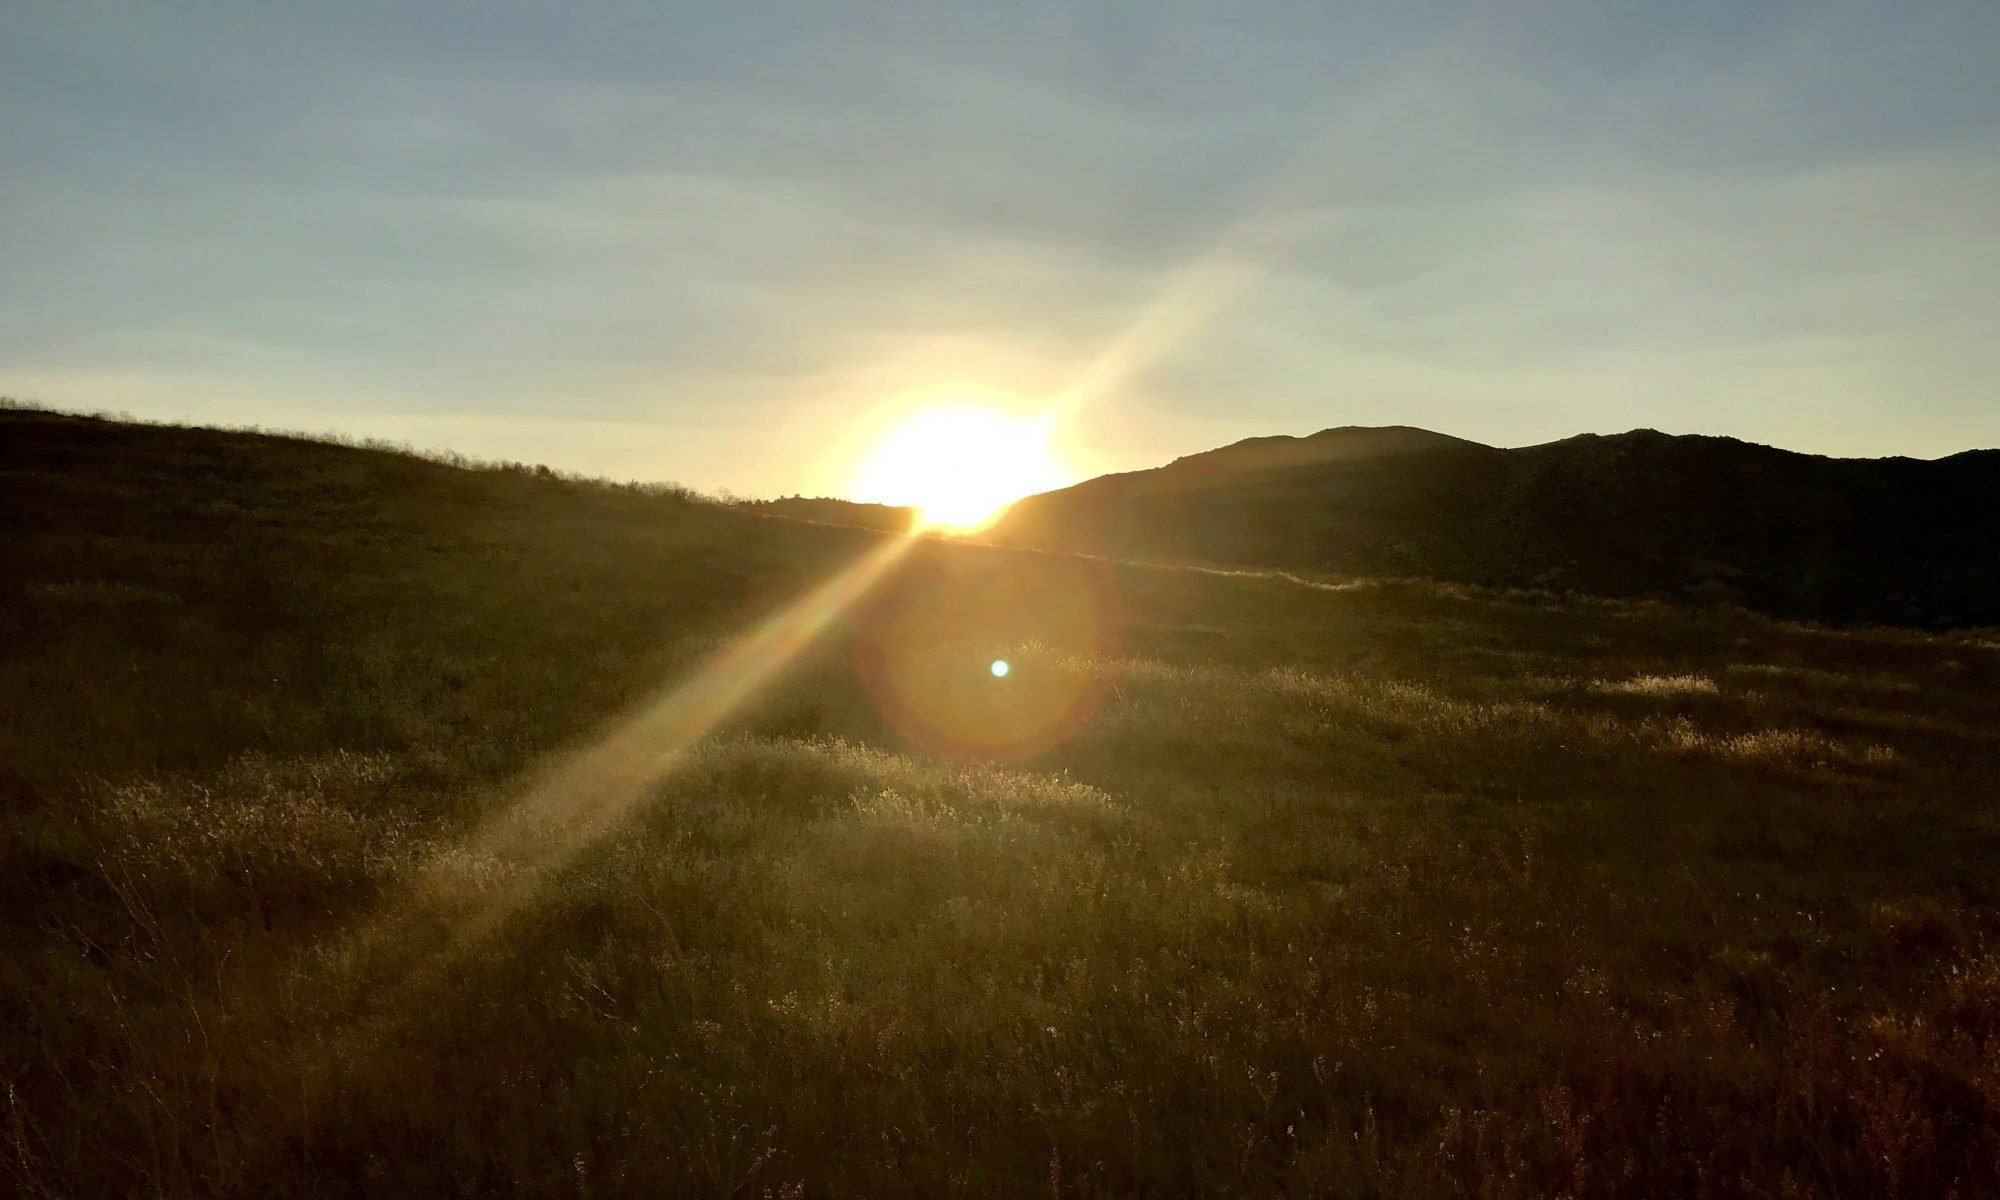 The rays of a sun shine out to the upper right and lower left as it sets behind a hill